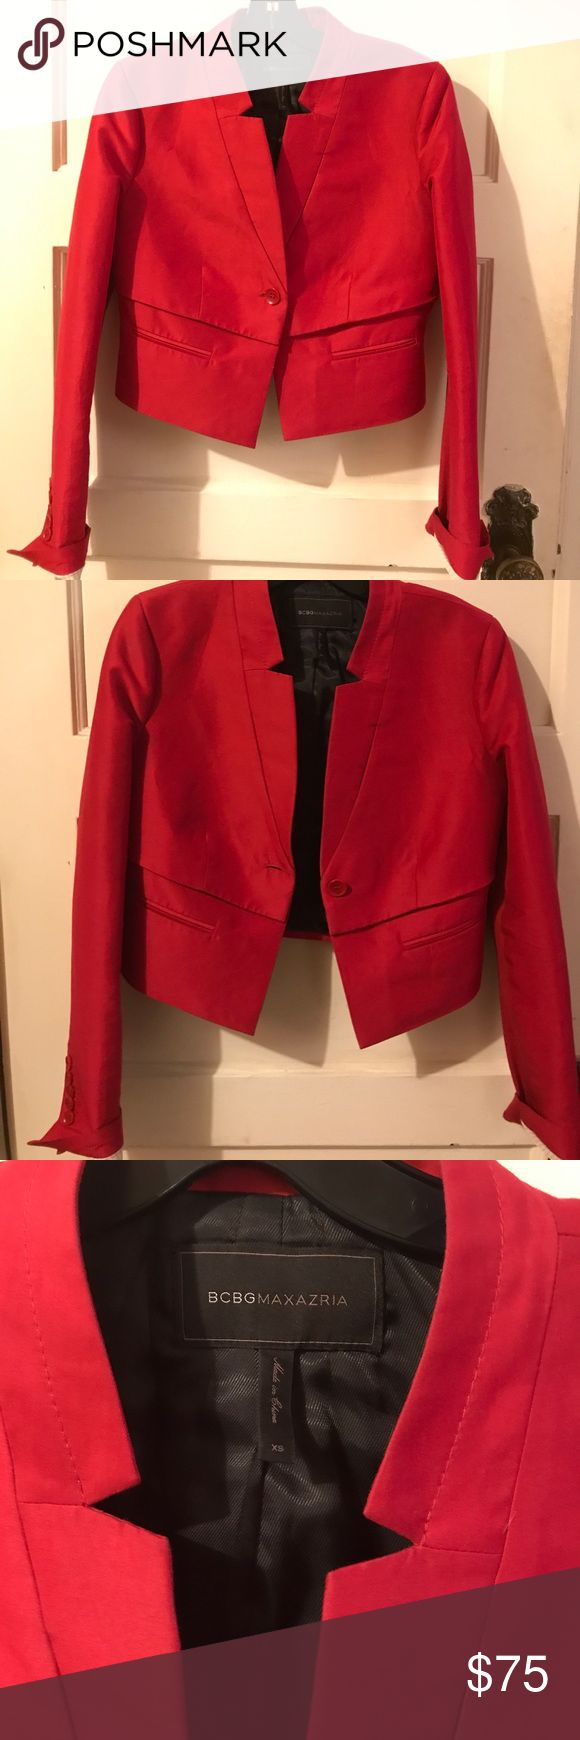 Tailored Red BCBG Max Azria Cropped Blazer Gorgeous blazer. Cropped and structured. Offers welcome, pictures of this on available upon request. BCBGMaxAzria Jackets & Coats Blazers